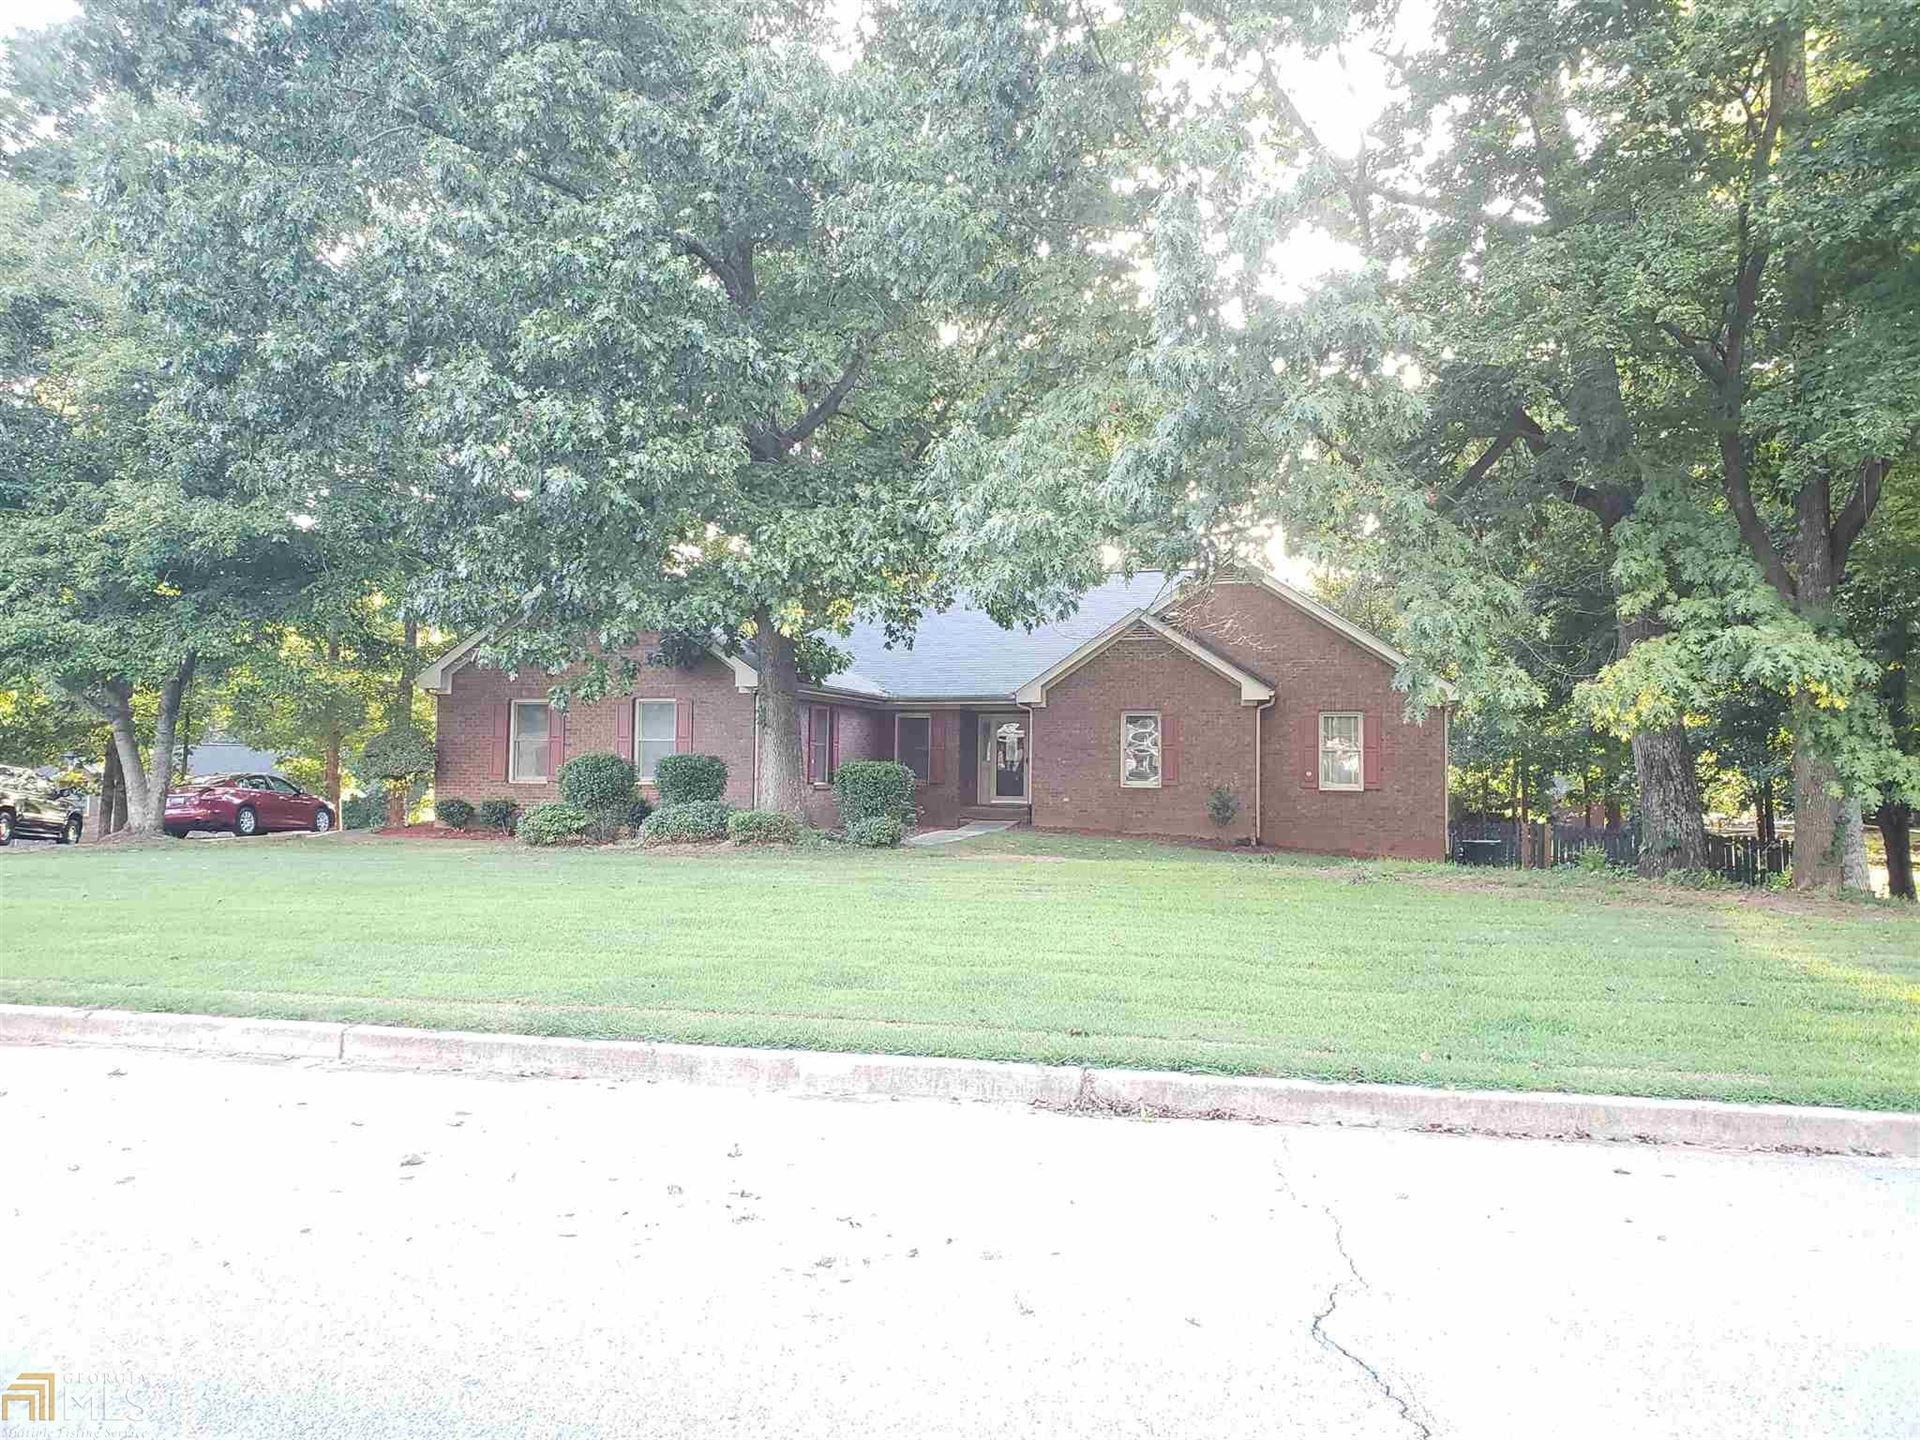 2208 Thames Dr, Conyers, GA 30013 - #: 8756030